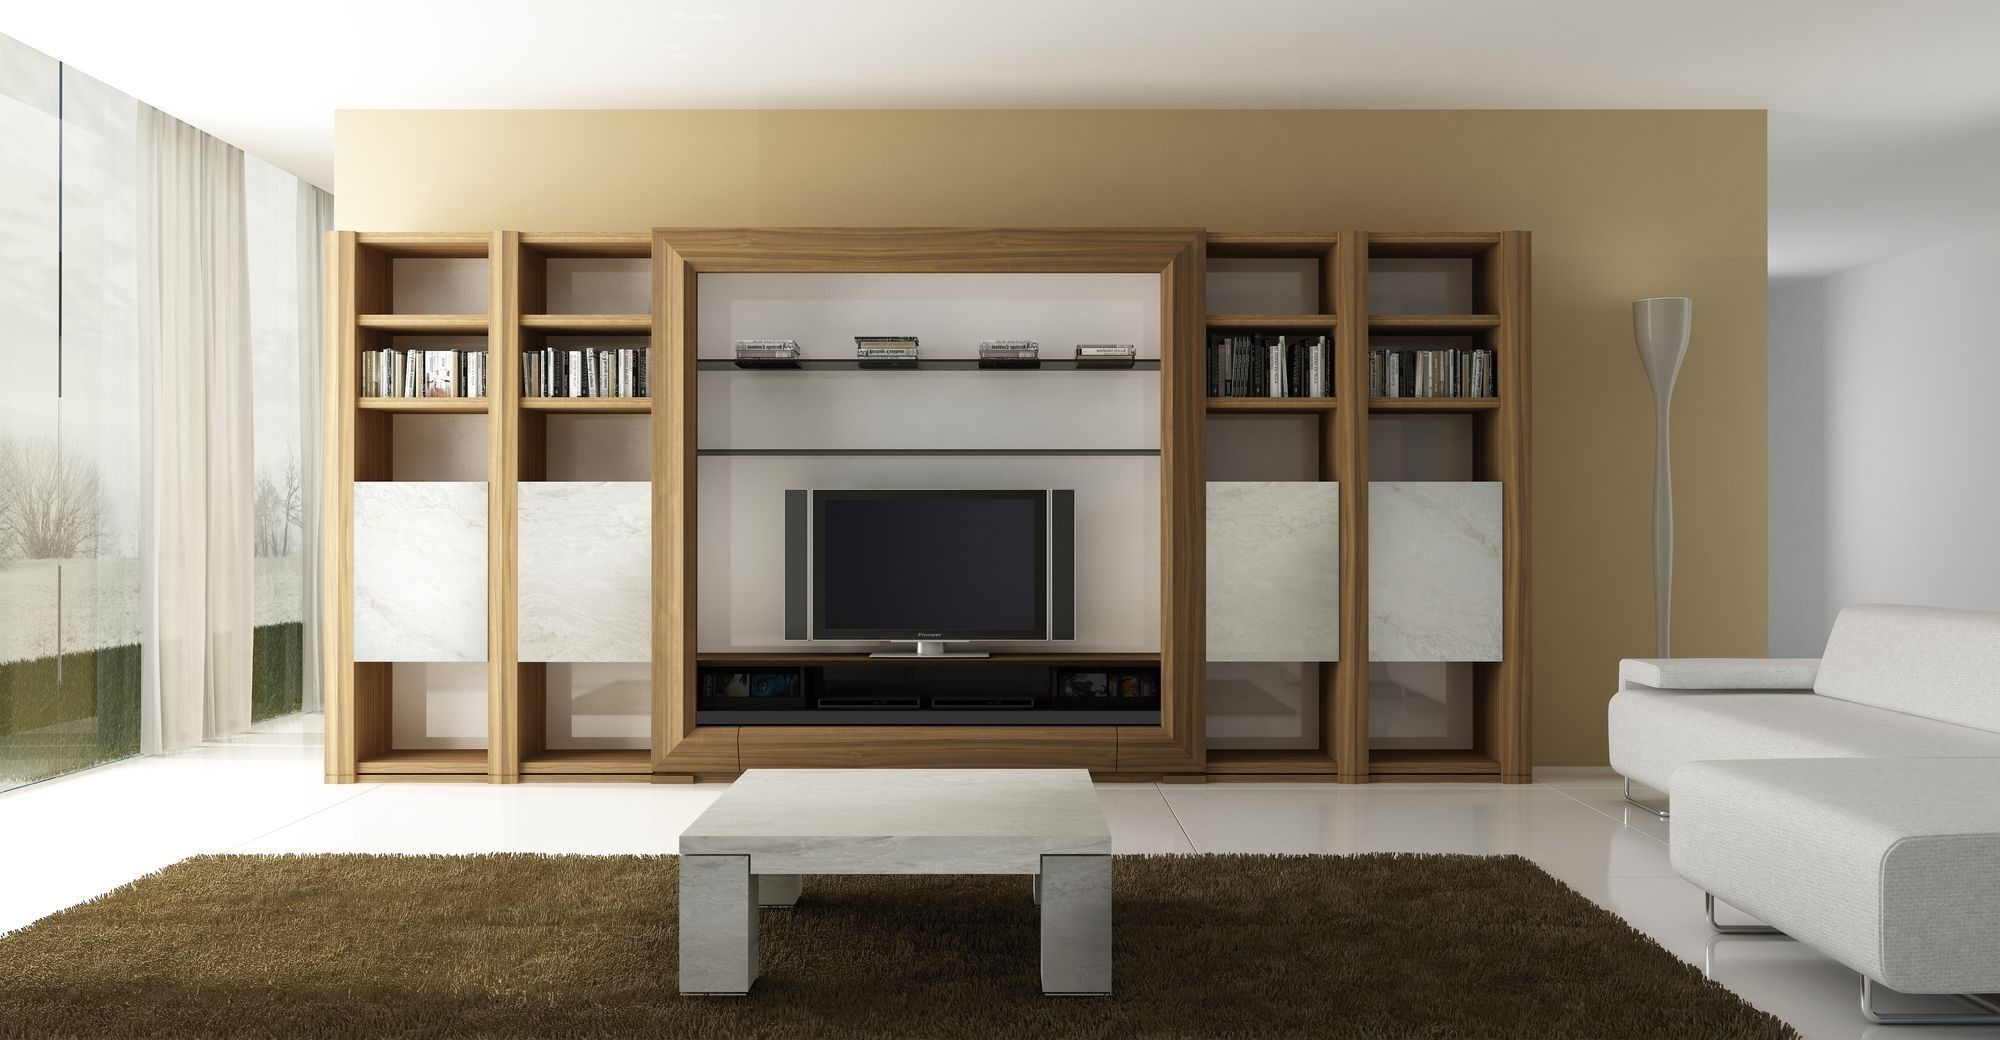 home design breathtaking wooden tv wall units with on incredible tv wall design ideas for living room decor layouts of tv models id=45585